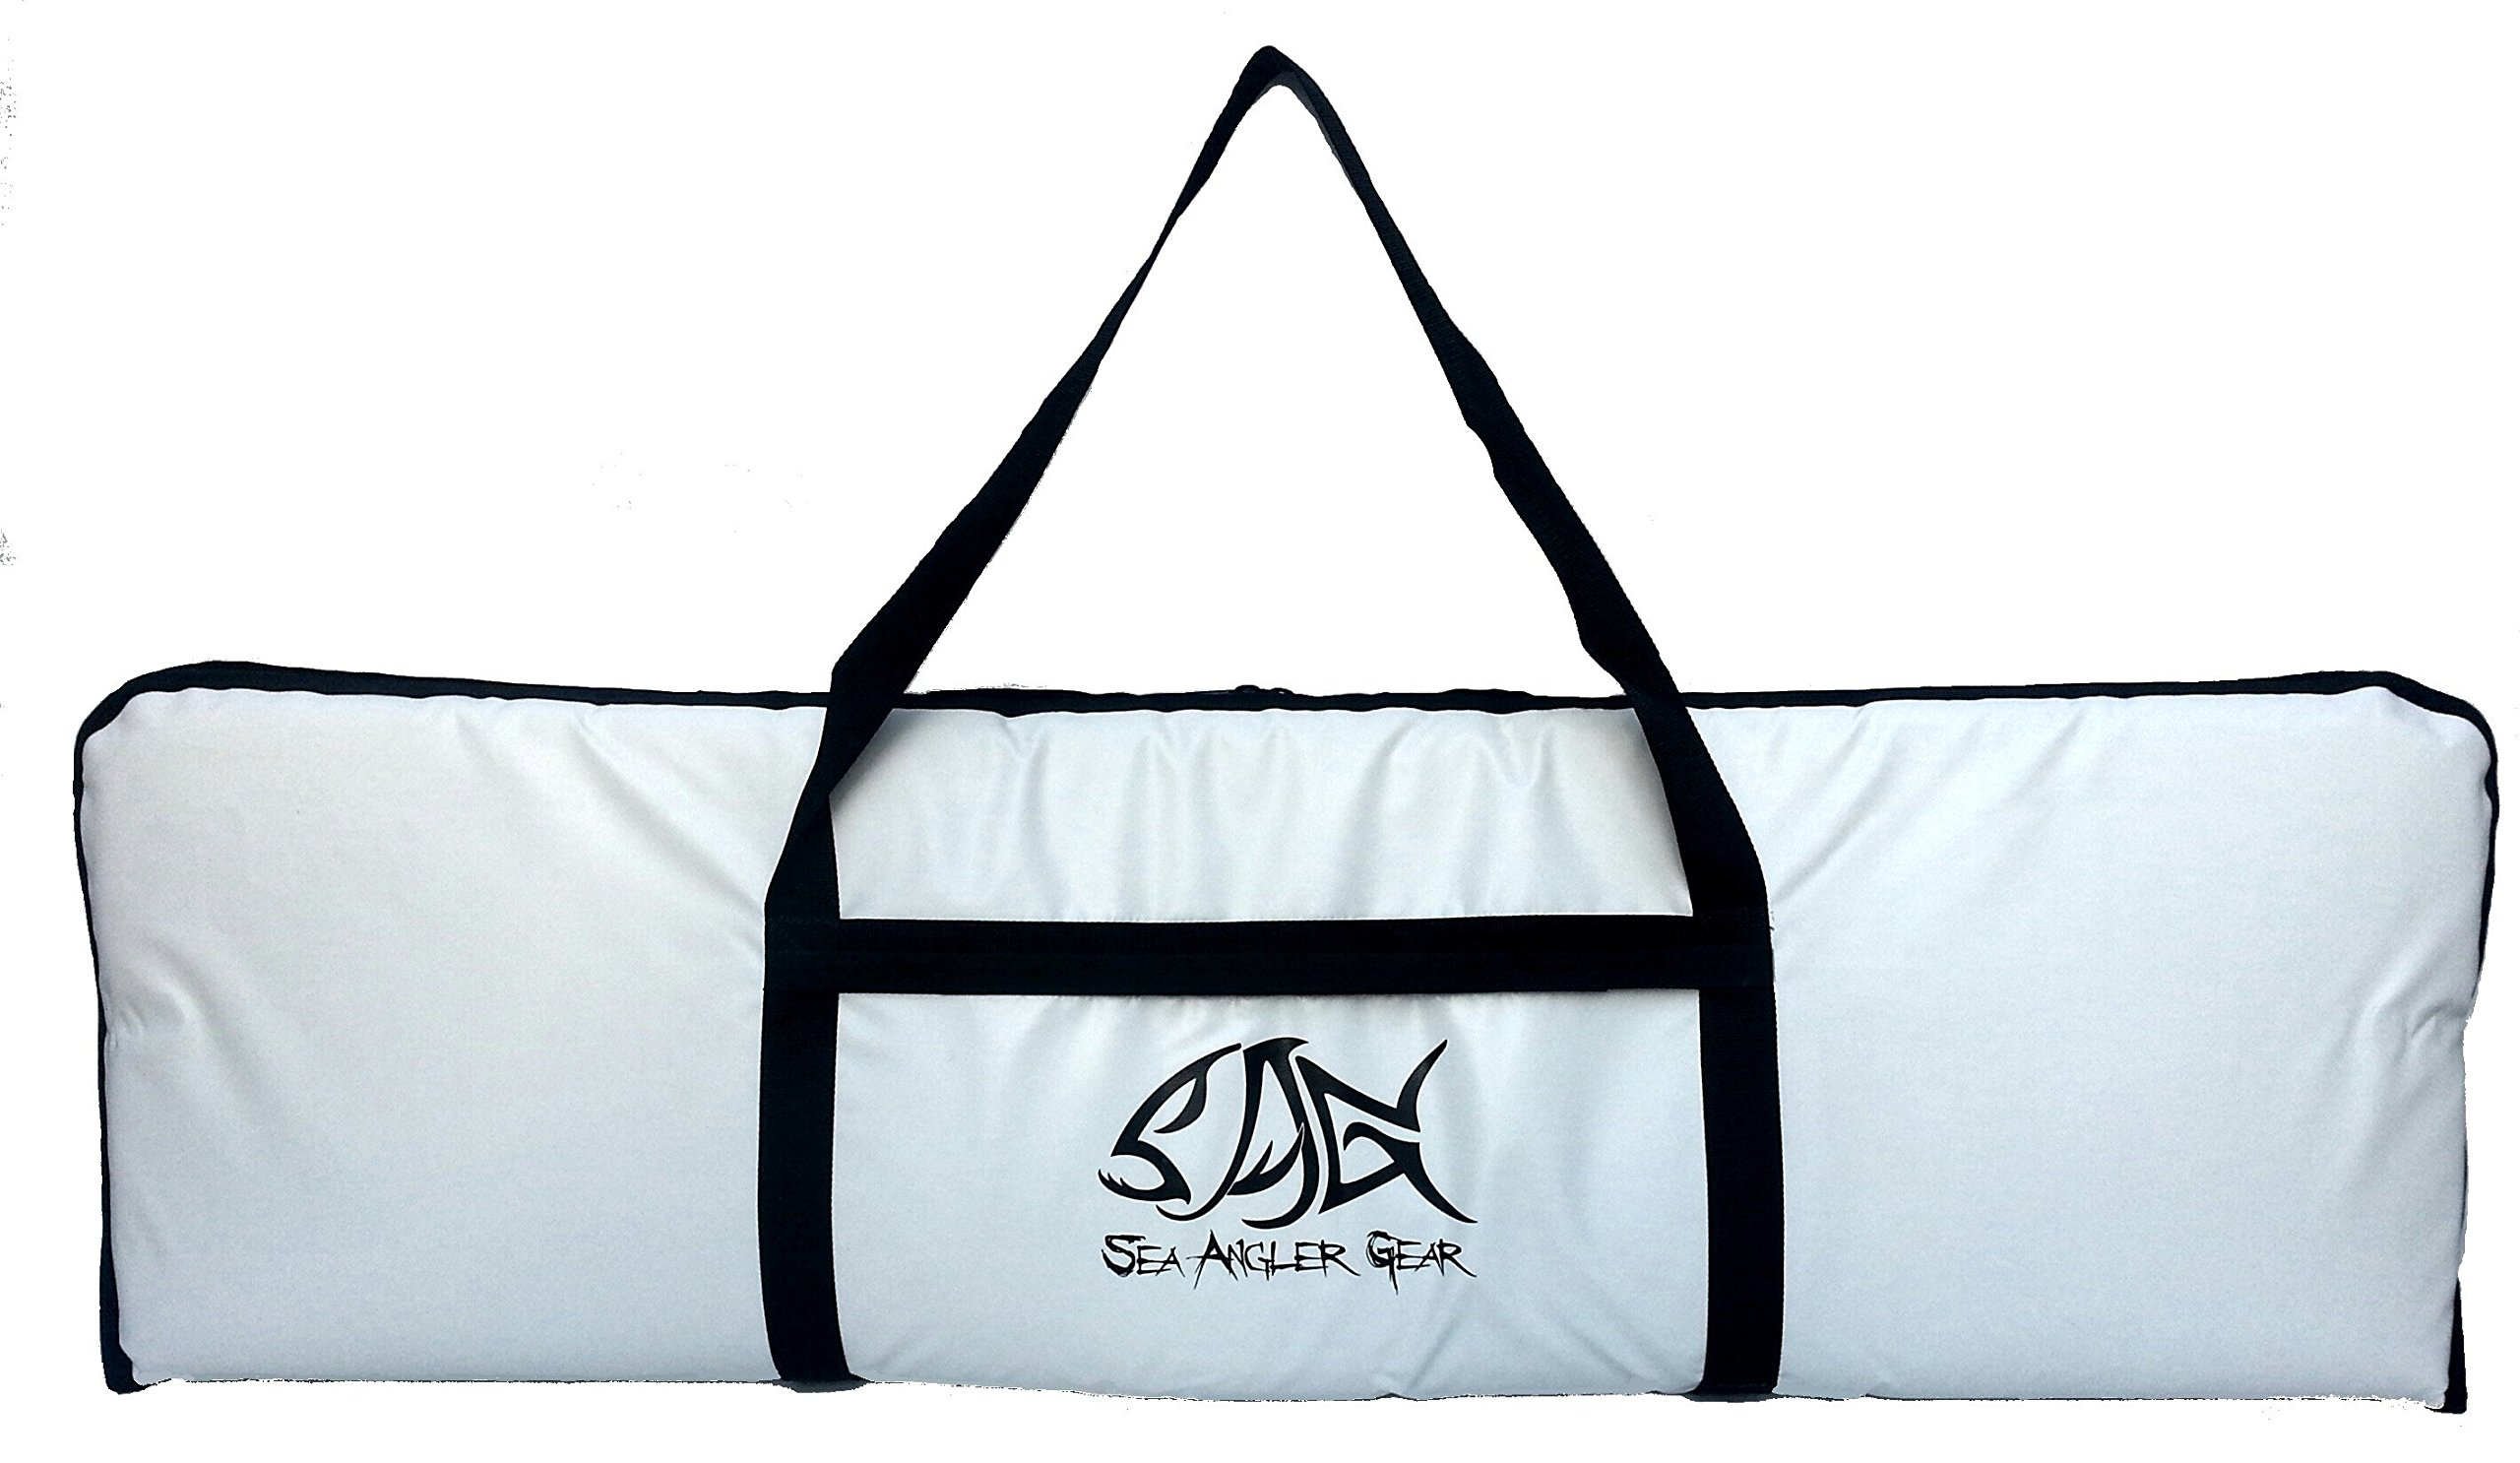 65x20 Offshore Fish Bag